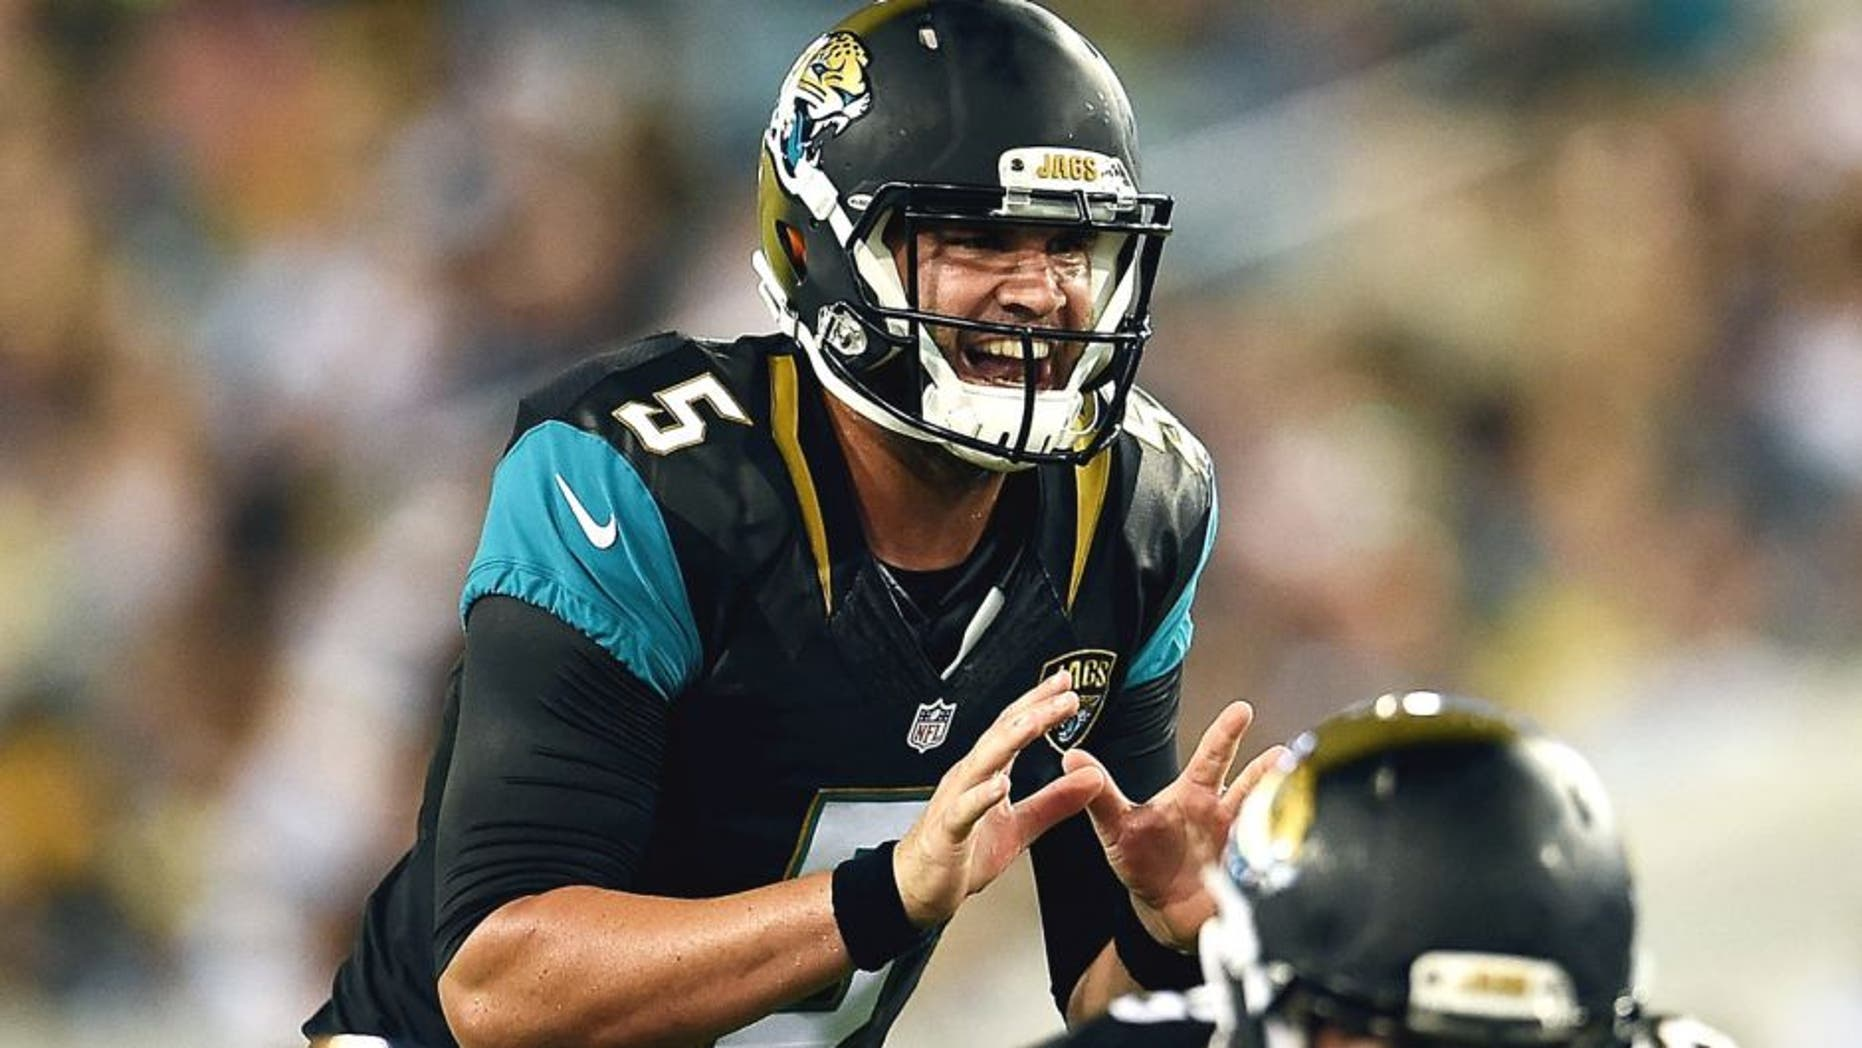 JACKSONVILLE, FL - AUGUST 14: Blake Bortles #5 of the Jacksonville Jaguars calls for the ball during a preseason game against the Pittsburgh Steelers at EverBank Field on August 14, 2015 in Jacksonville, Florida. (Photo by Stacy Revere/Getty Images)